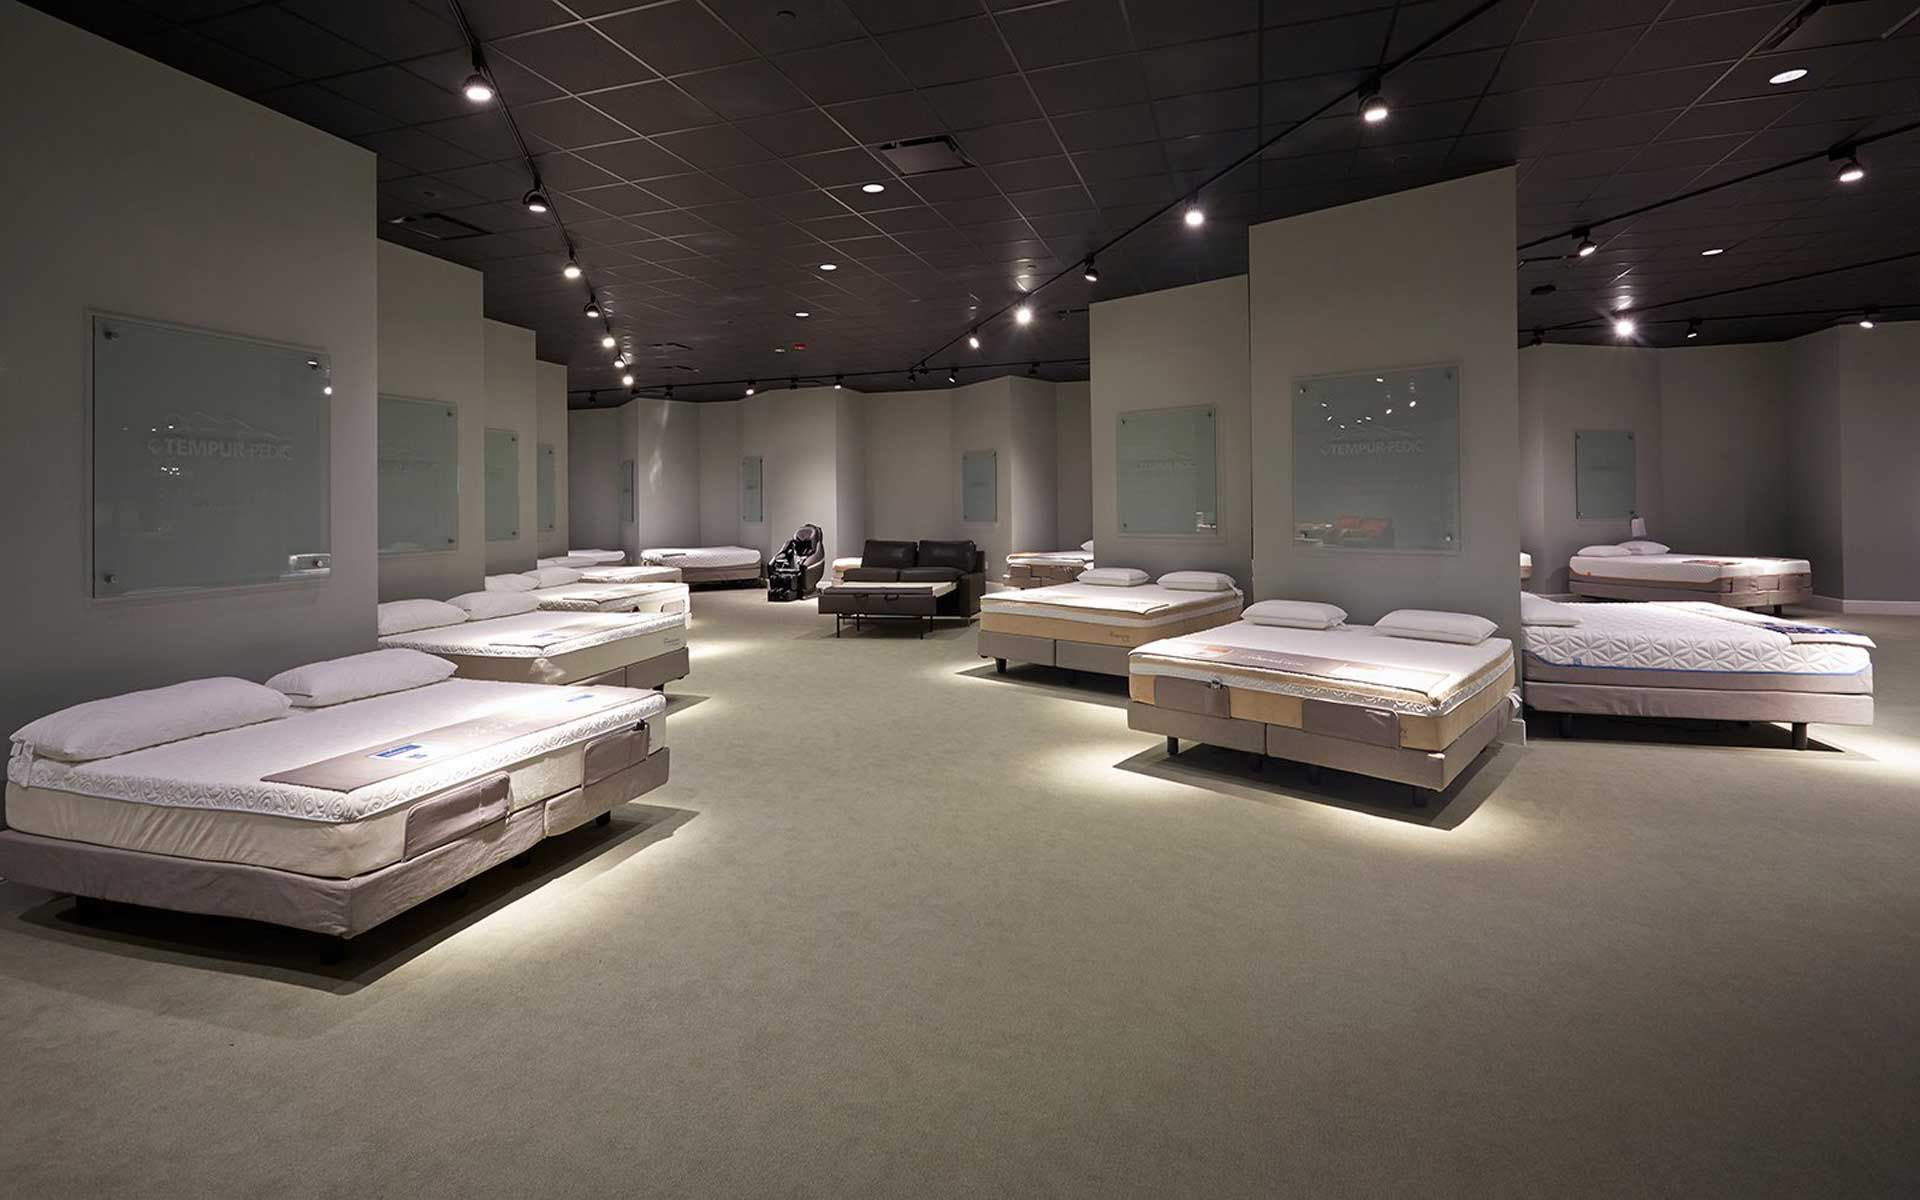 The Services Of Stain Removal For Mattresses Are Offered By Back 2 New Cleaning Company Brisbane